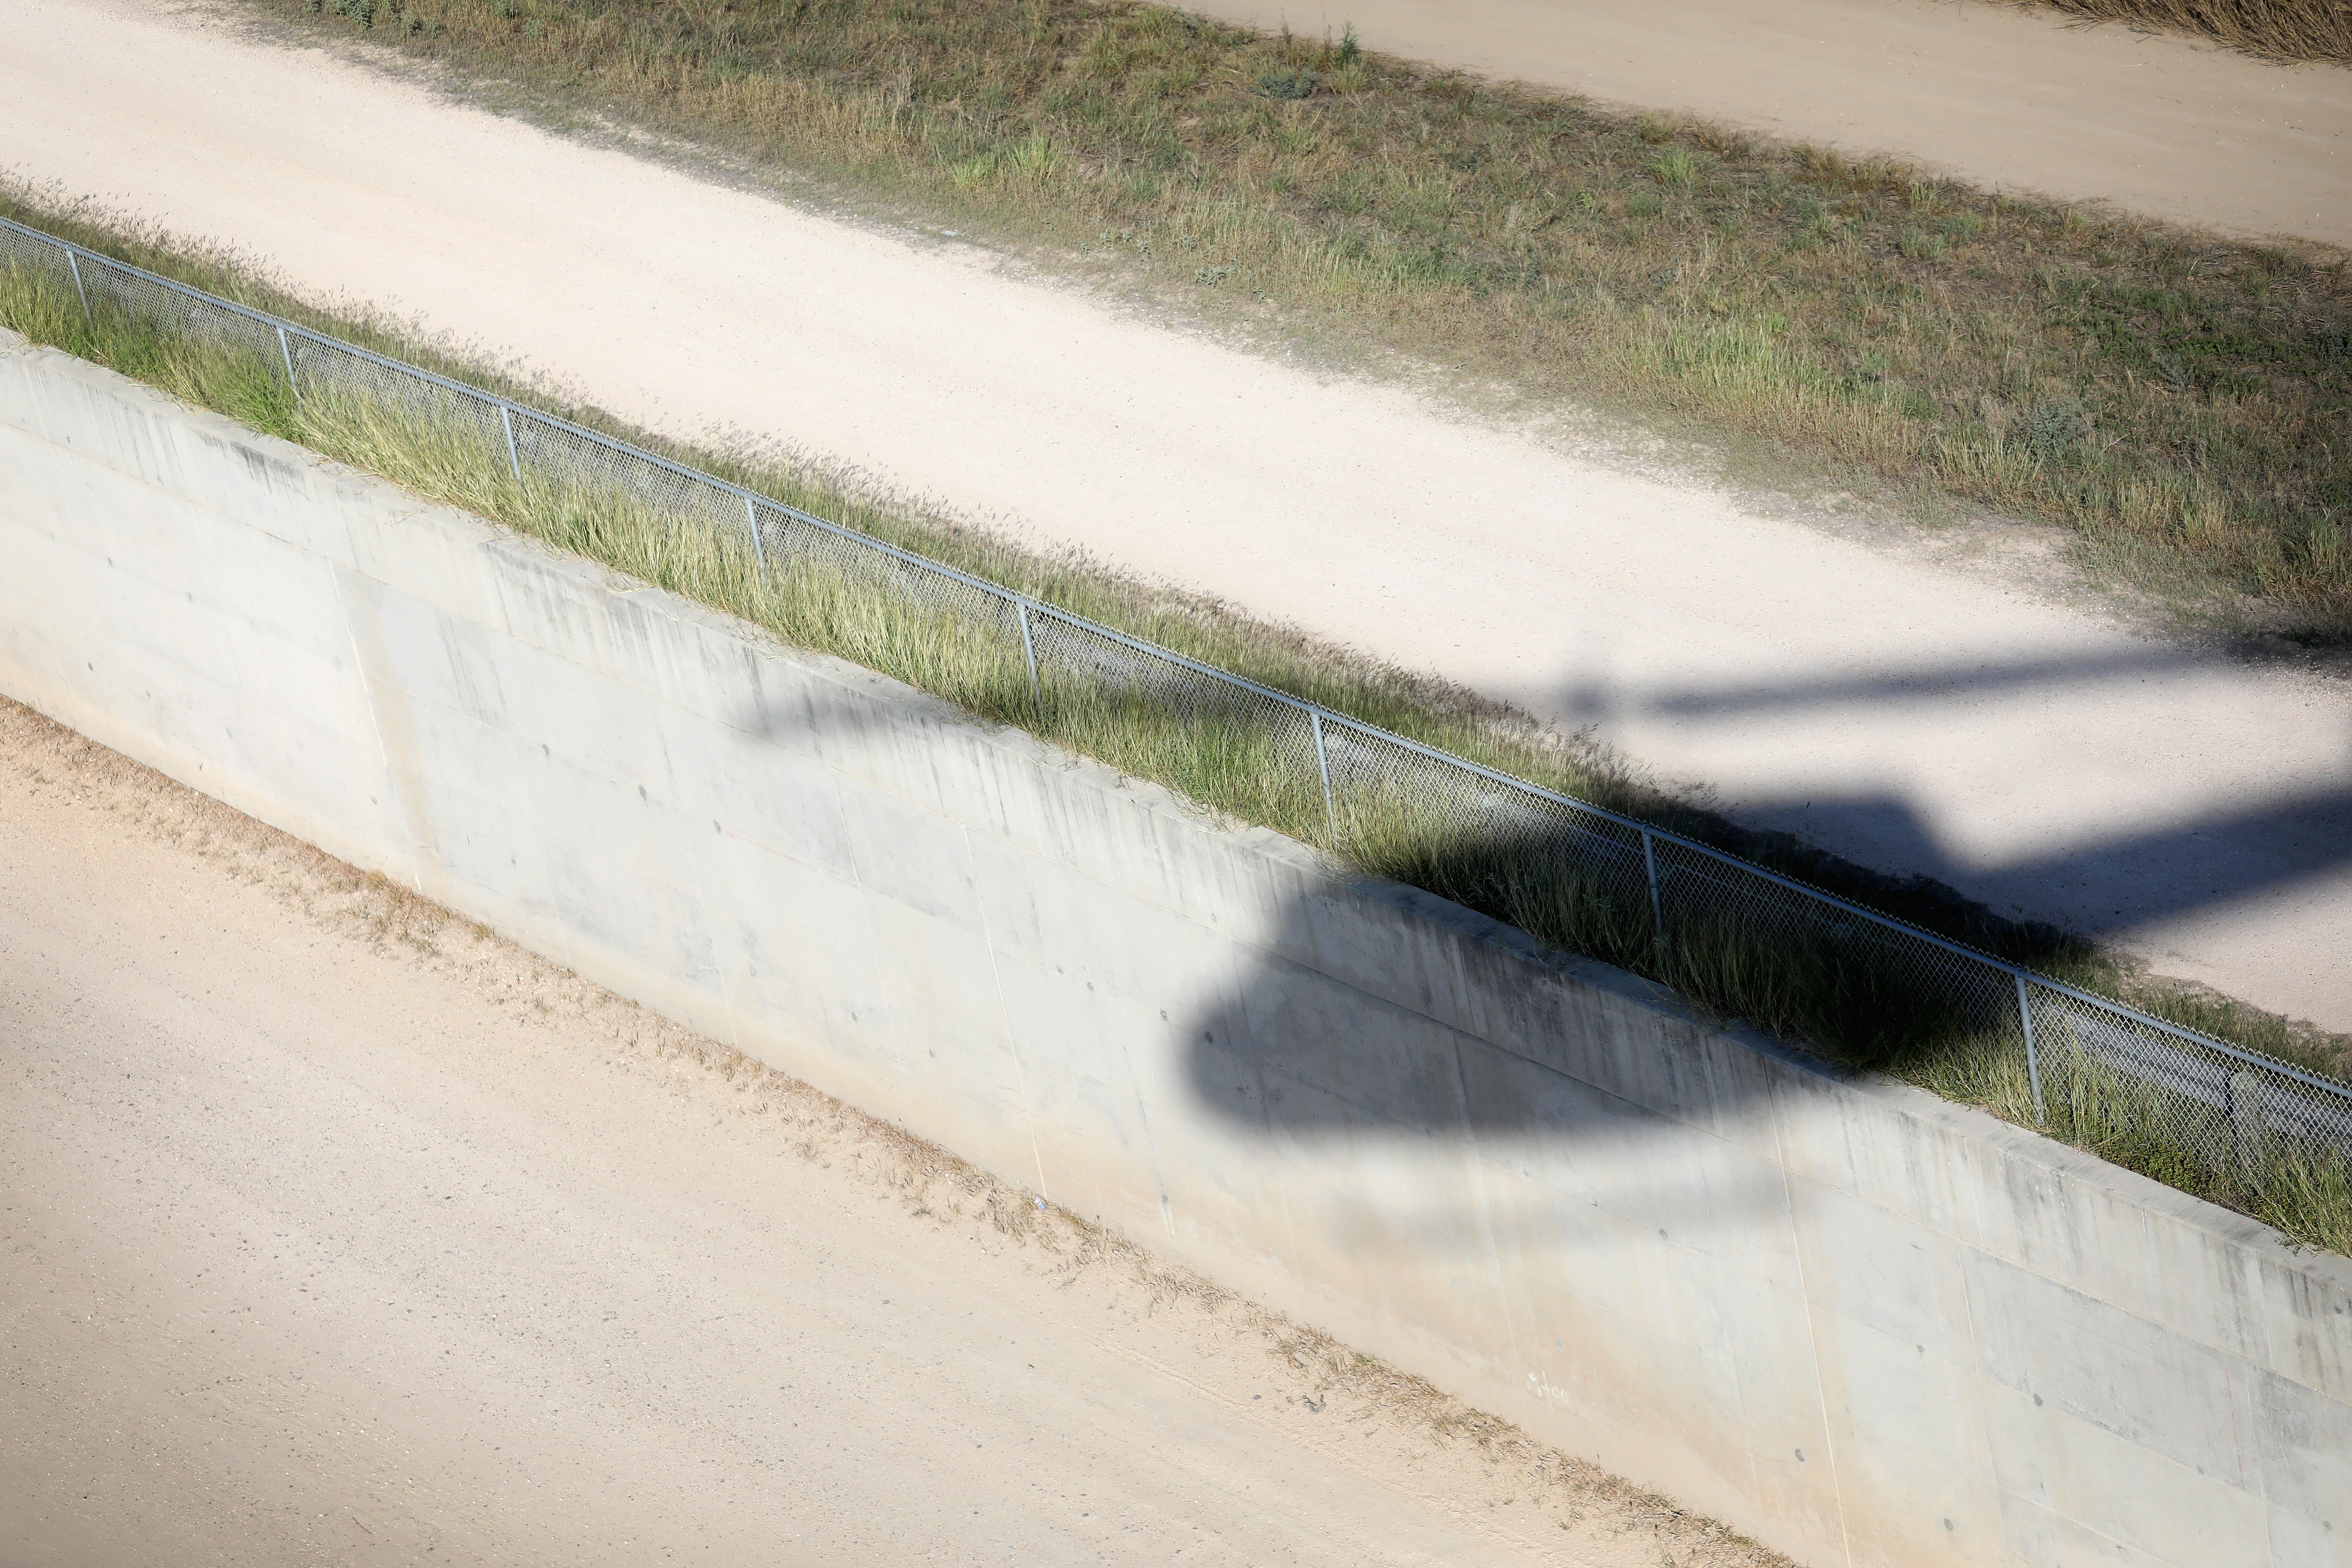 A U.S. Customs and Border Protection helicopter flies over a border fence at the U.S.-Mexico border on a patrol on October 18, 2016 near McAllen, Texas.